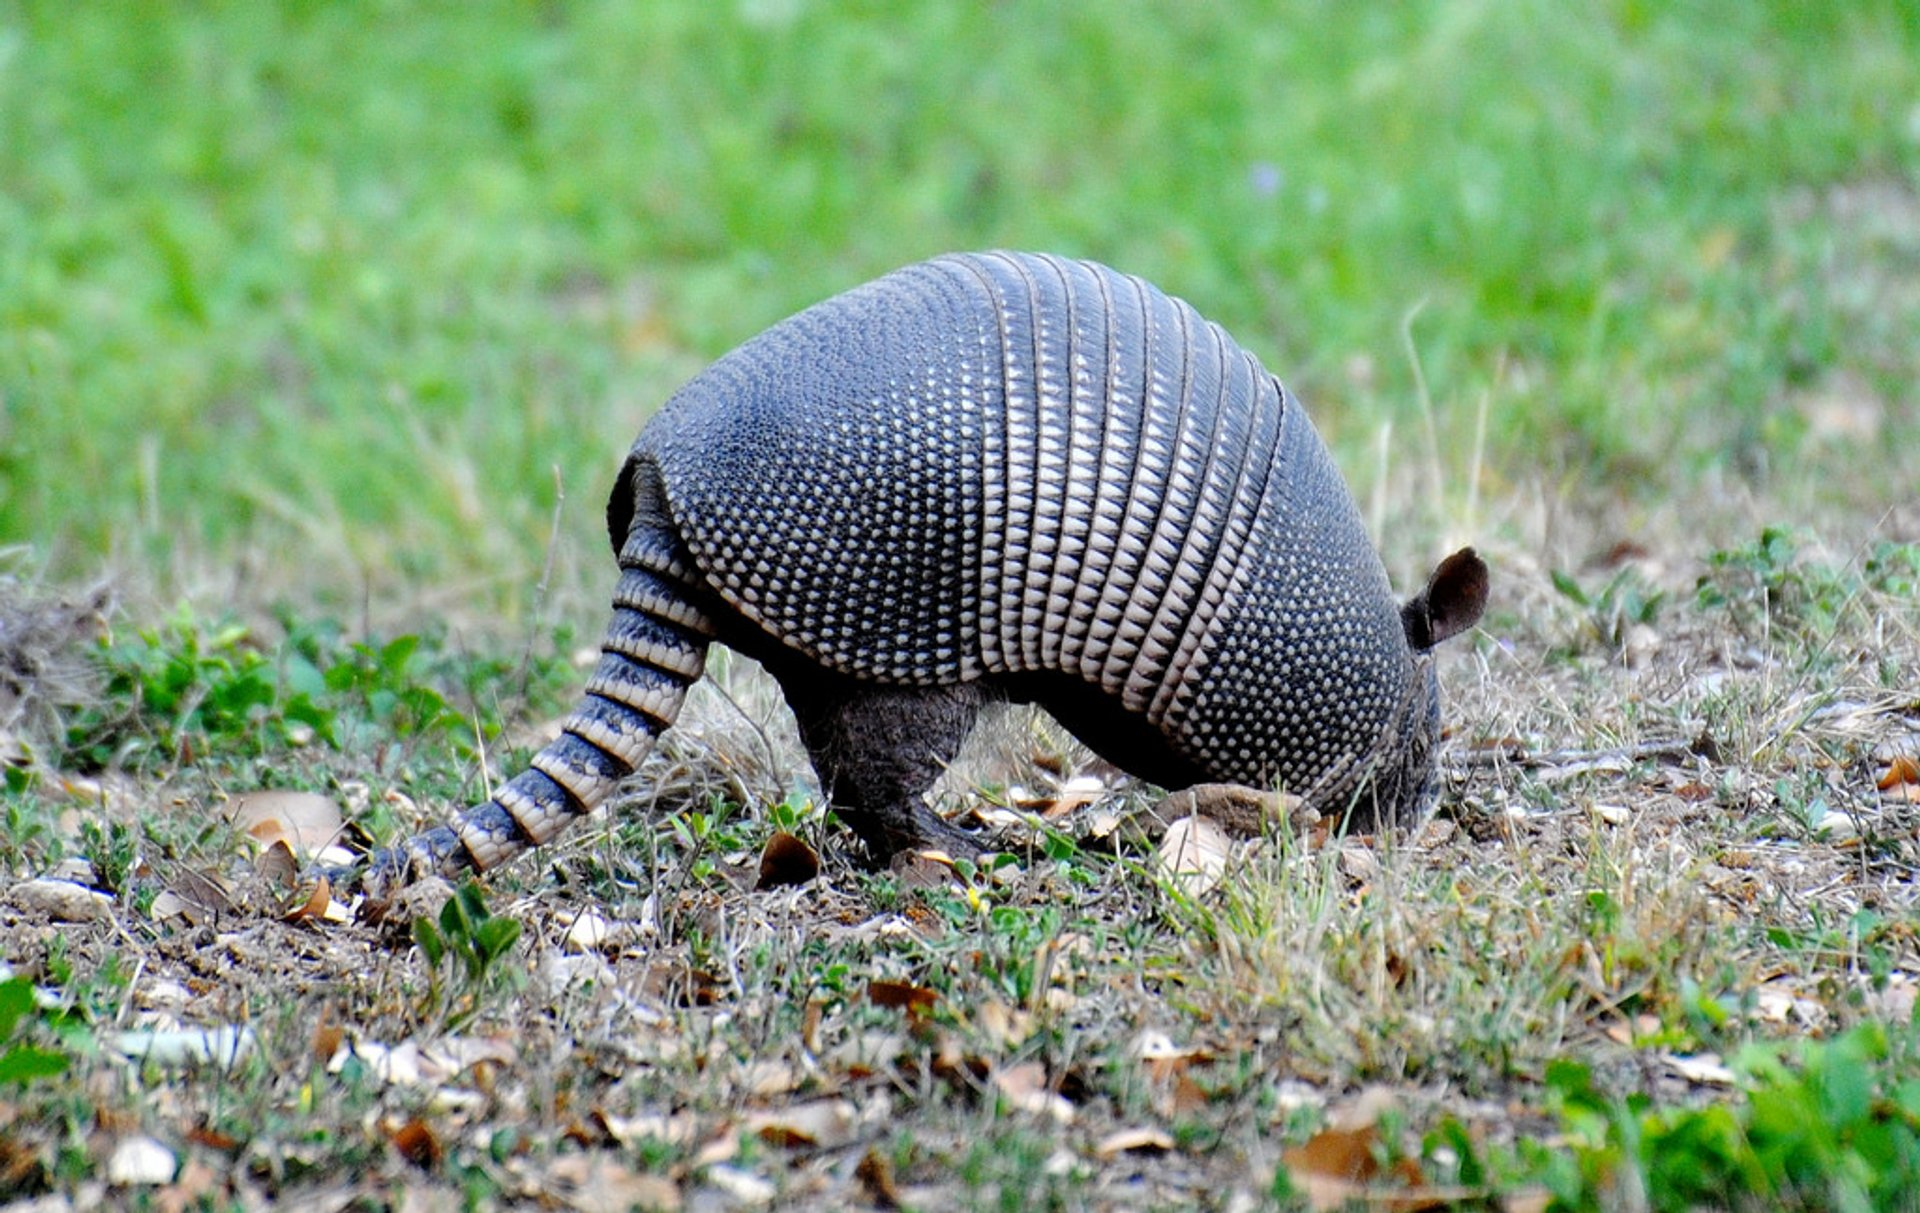 Armadillo seen in Montell, Texas 2020